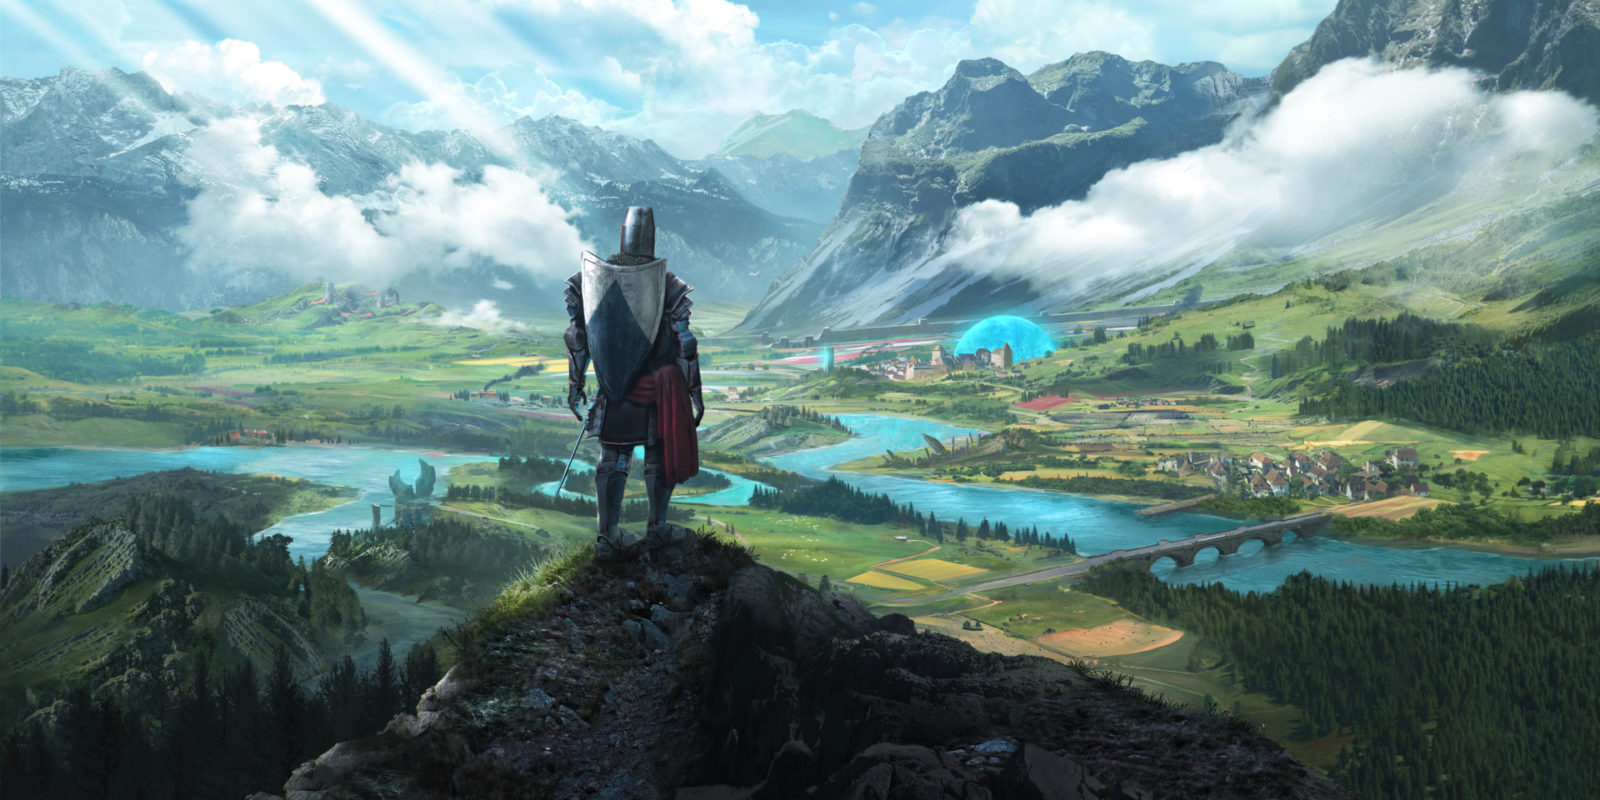 Exploring black and white morality through gray characters in video games, protagonist or antagonist, hero or villain, legends of aria narrative storytelling